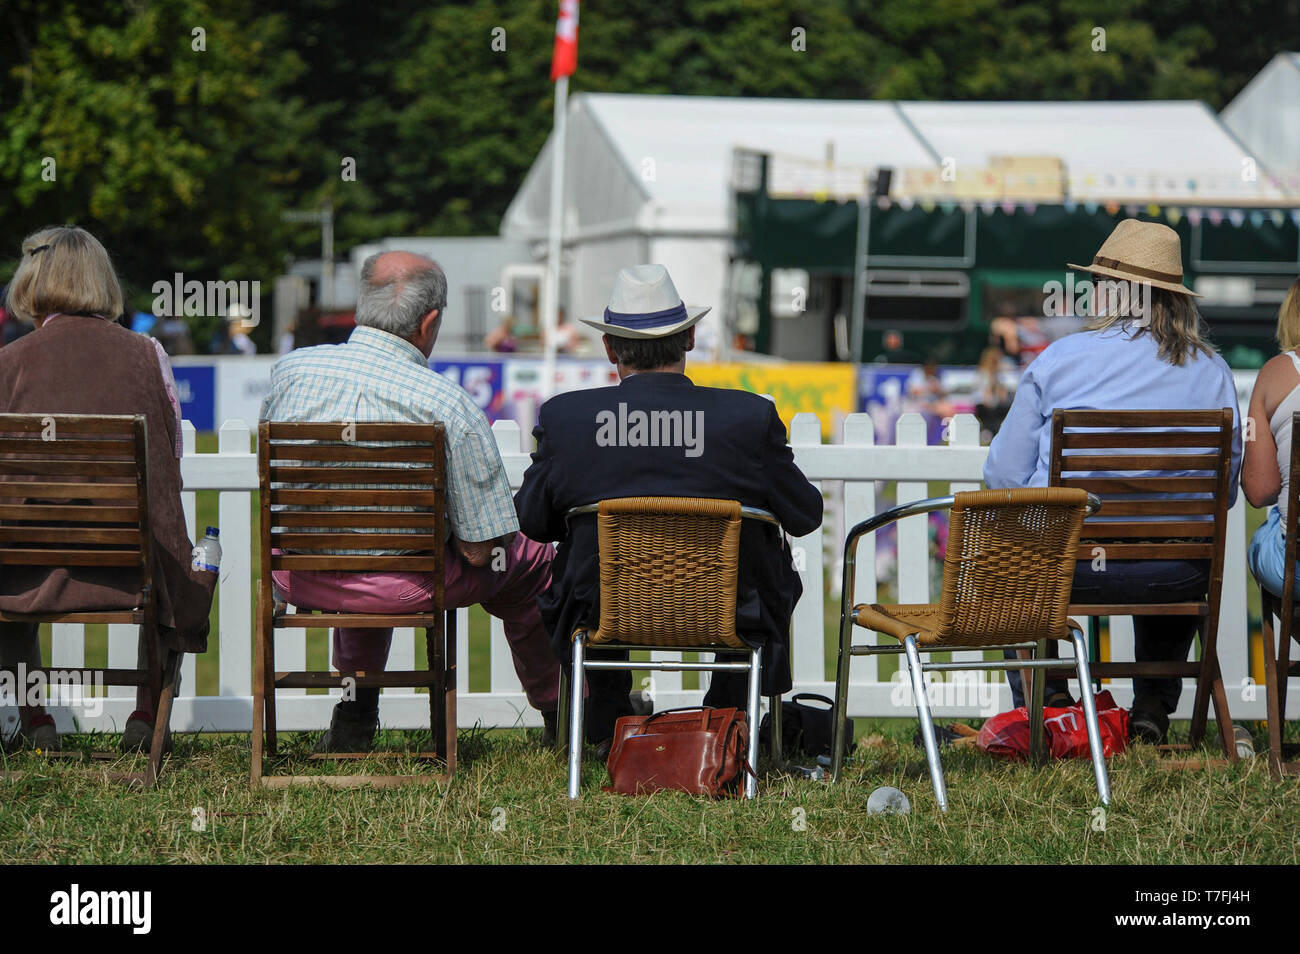 The Festival of British Eventing at Gatcombe Park 2015.  Pictured, gallery picture.  Picture by Gavin Crilly  Date 090815     by Gavin Crilly - Stock Image